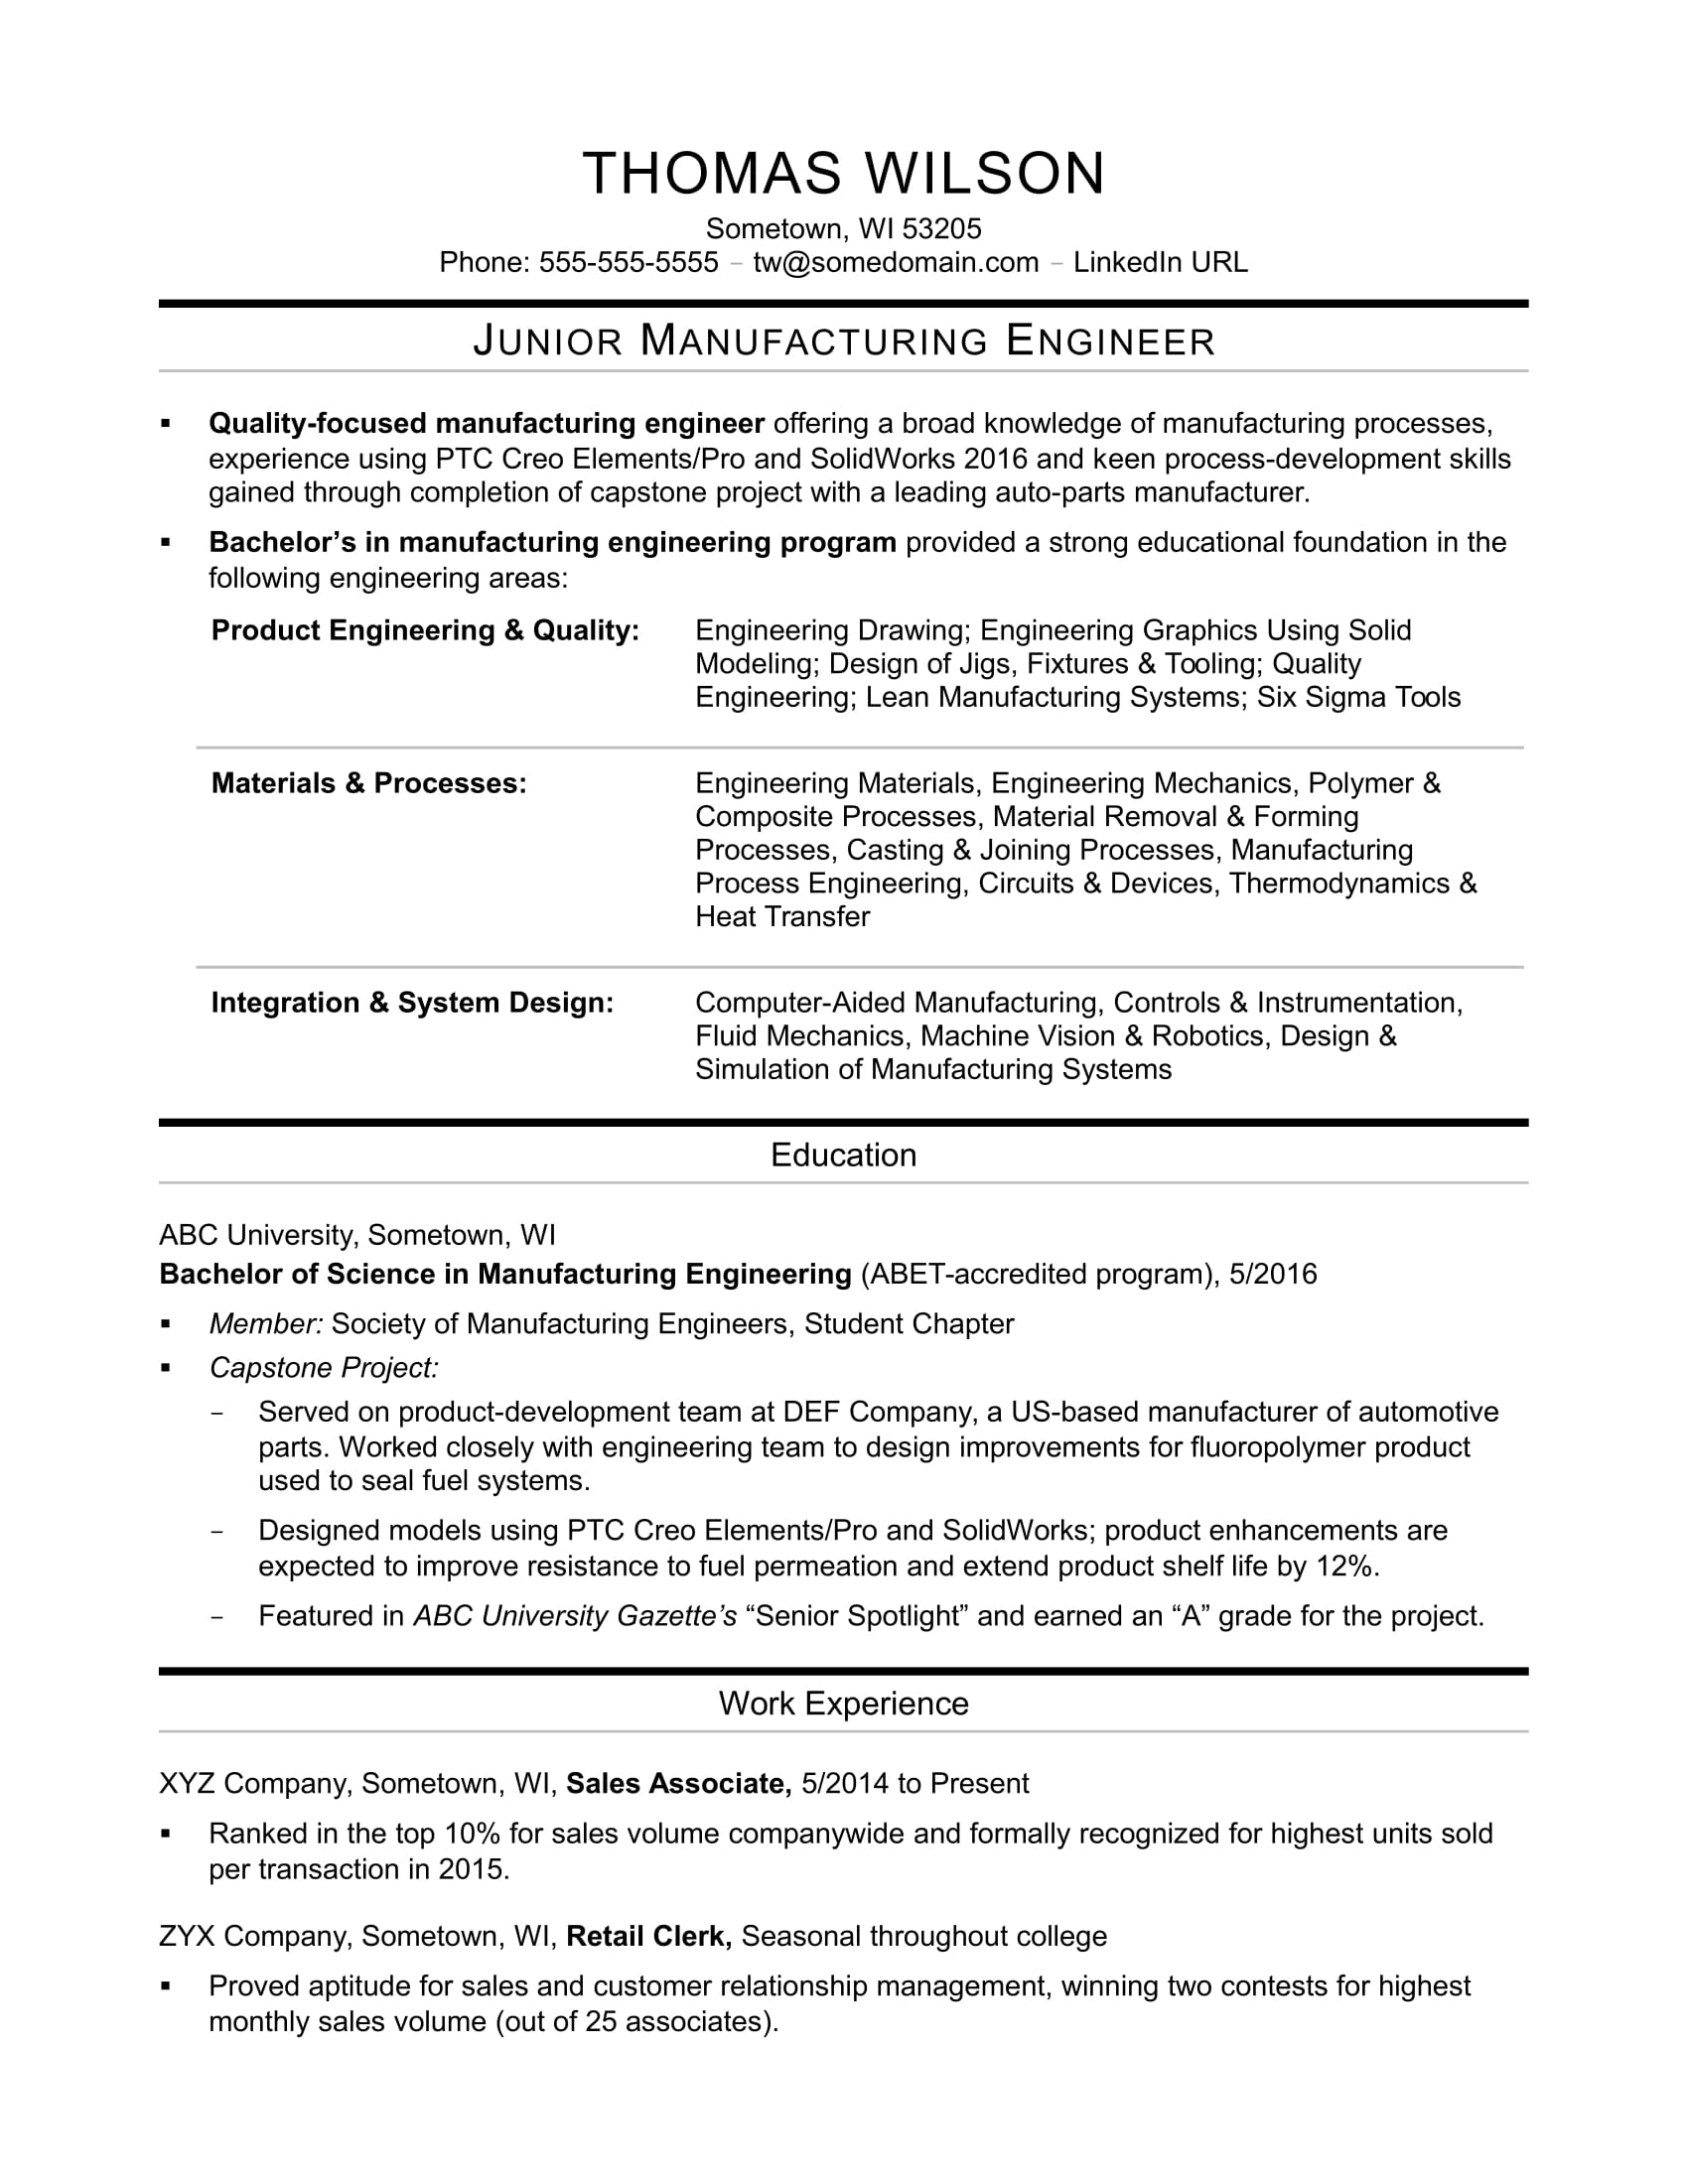 Sample Resume For An Entry Level Manufacturing Engineer Monster